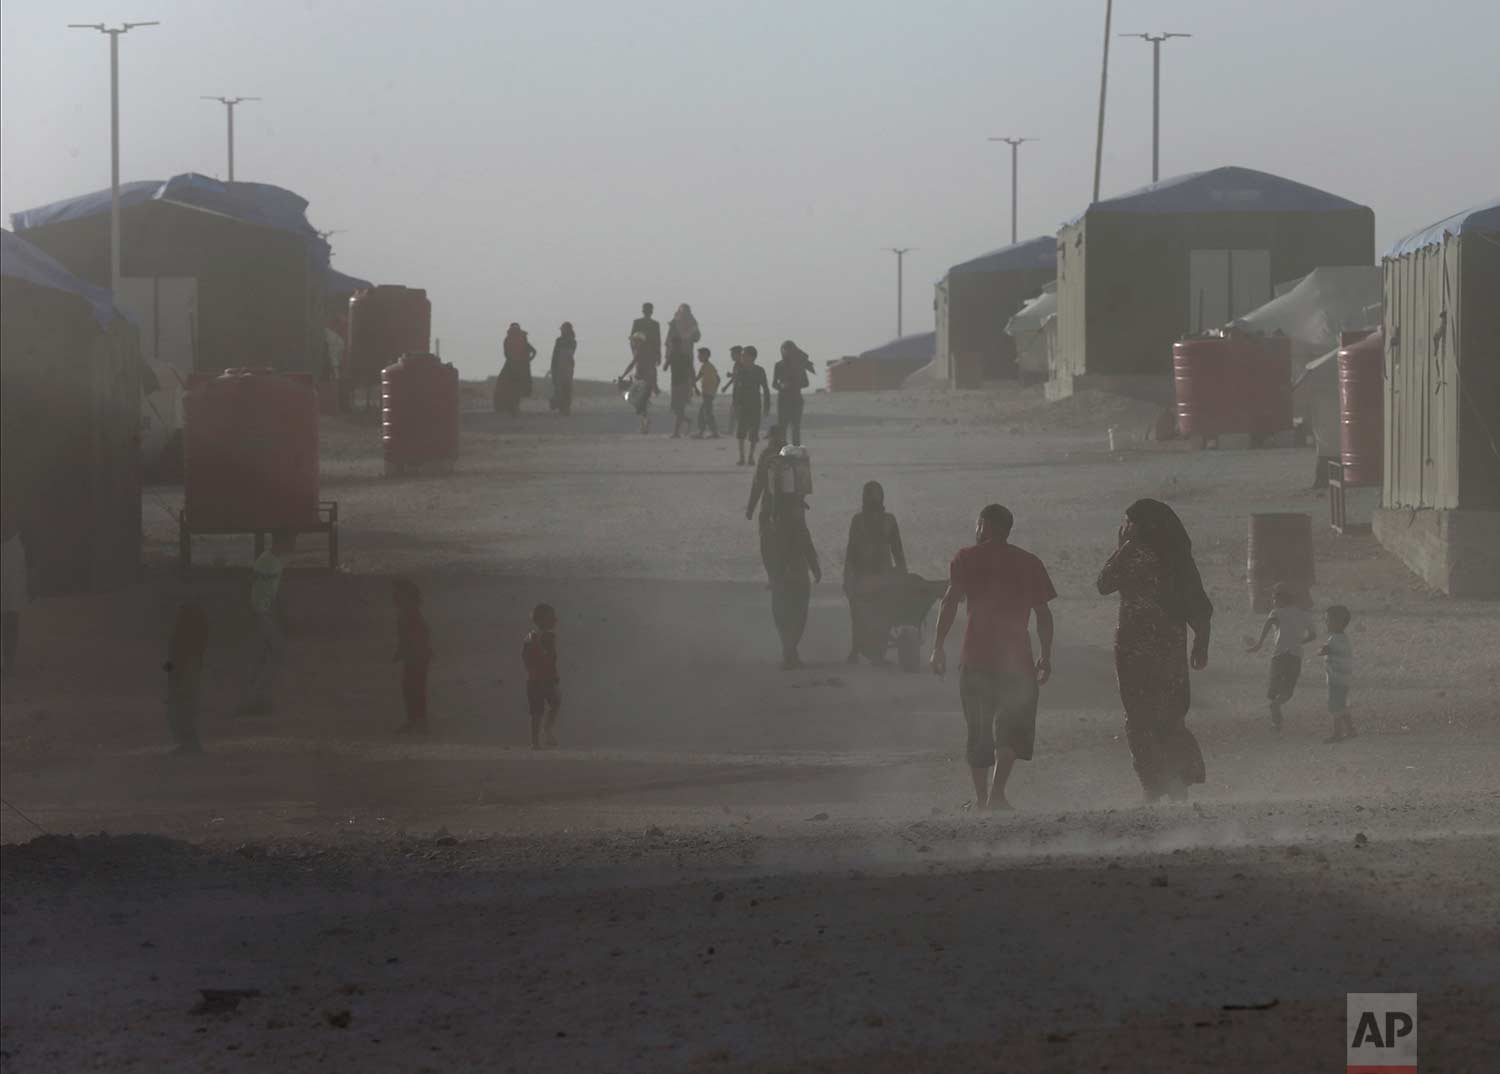 People who fled the battles between U.S.-backed Syrian Democratic Forces and the Islamic State militants from Raqqa, walk in the dust at a refugee camp, in Ain Issa, northeast Syria on Wednesday, July 19, 2017. (AP Photo/Hussein Malla)